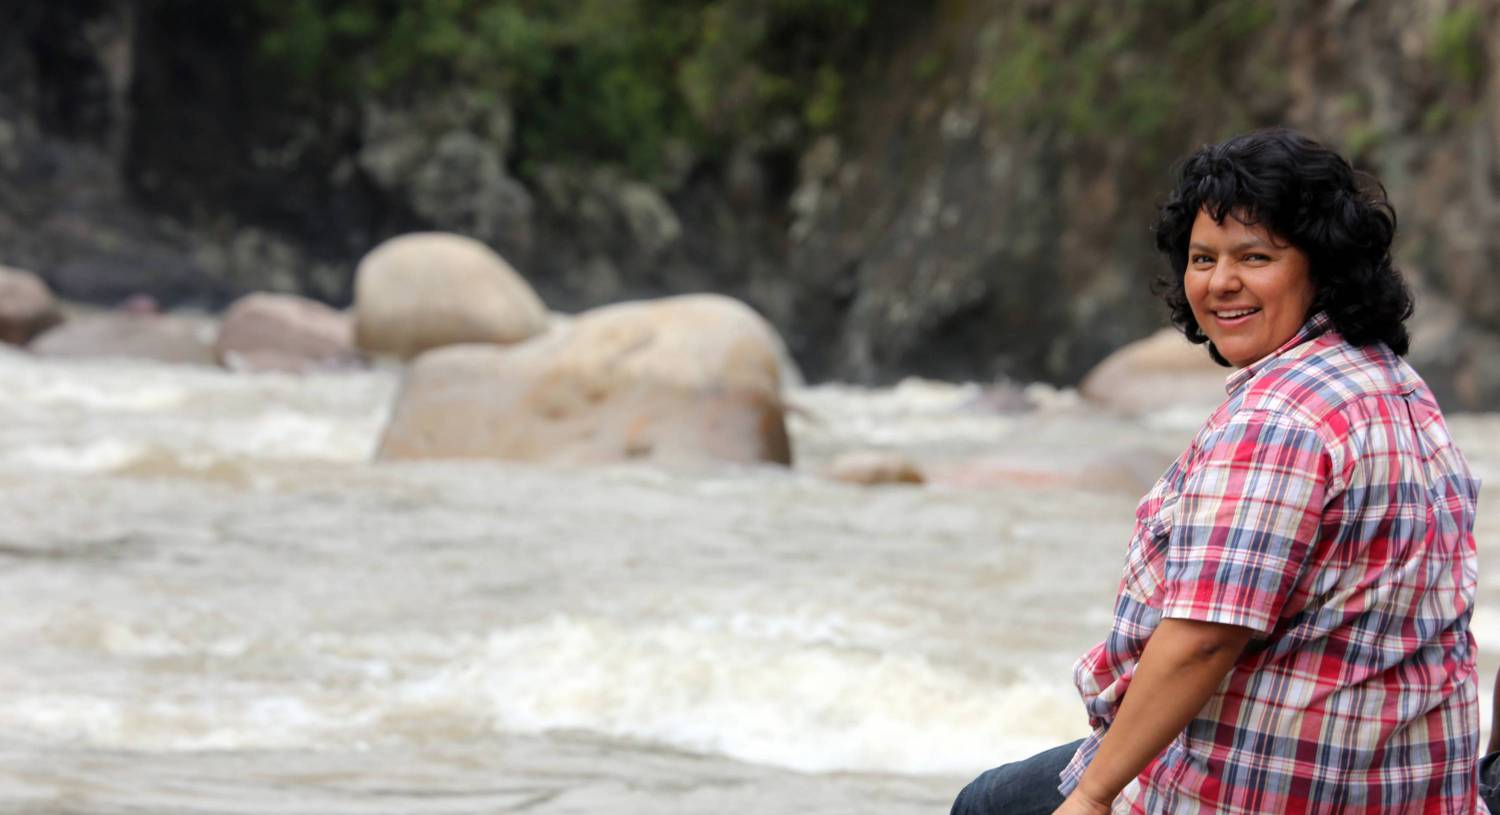 Trócaire in Honduras: Murdered 'because of her struggle, her work, at the hands of business'